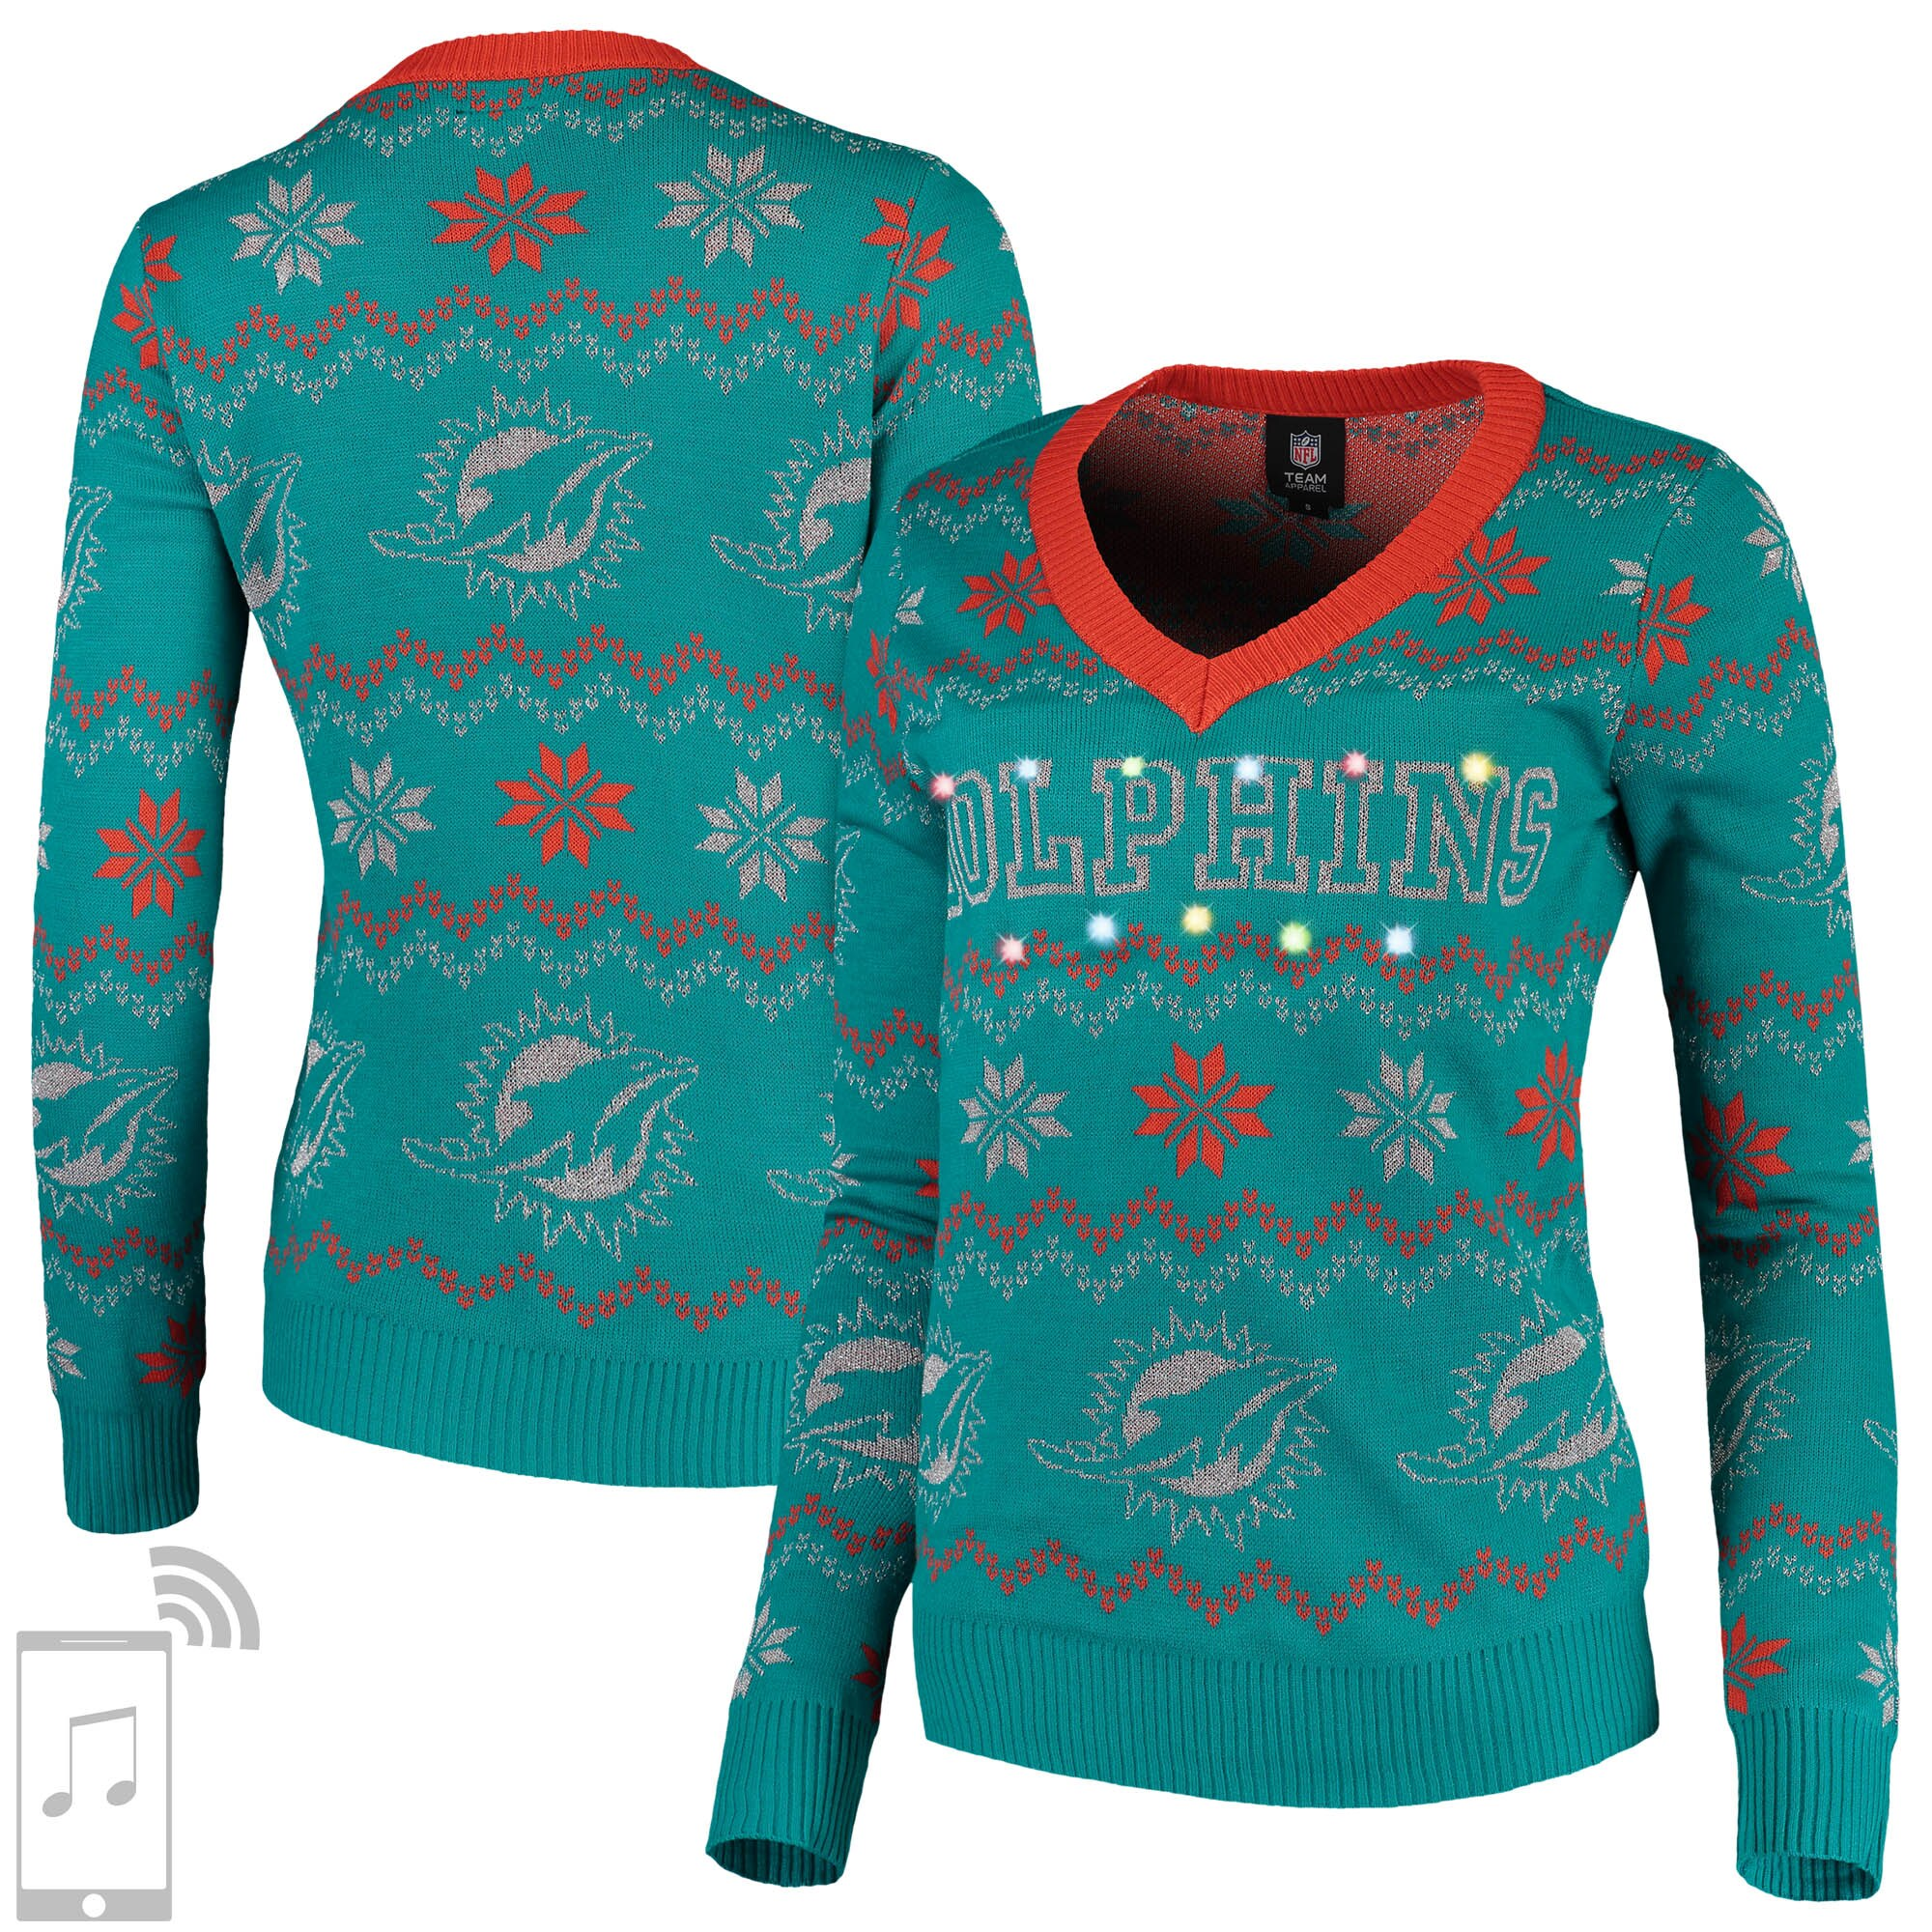 Miami Dolphins Women's V-Neck Bluetooth Light Up Tri-Blend Ugly Sweater - Aqua